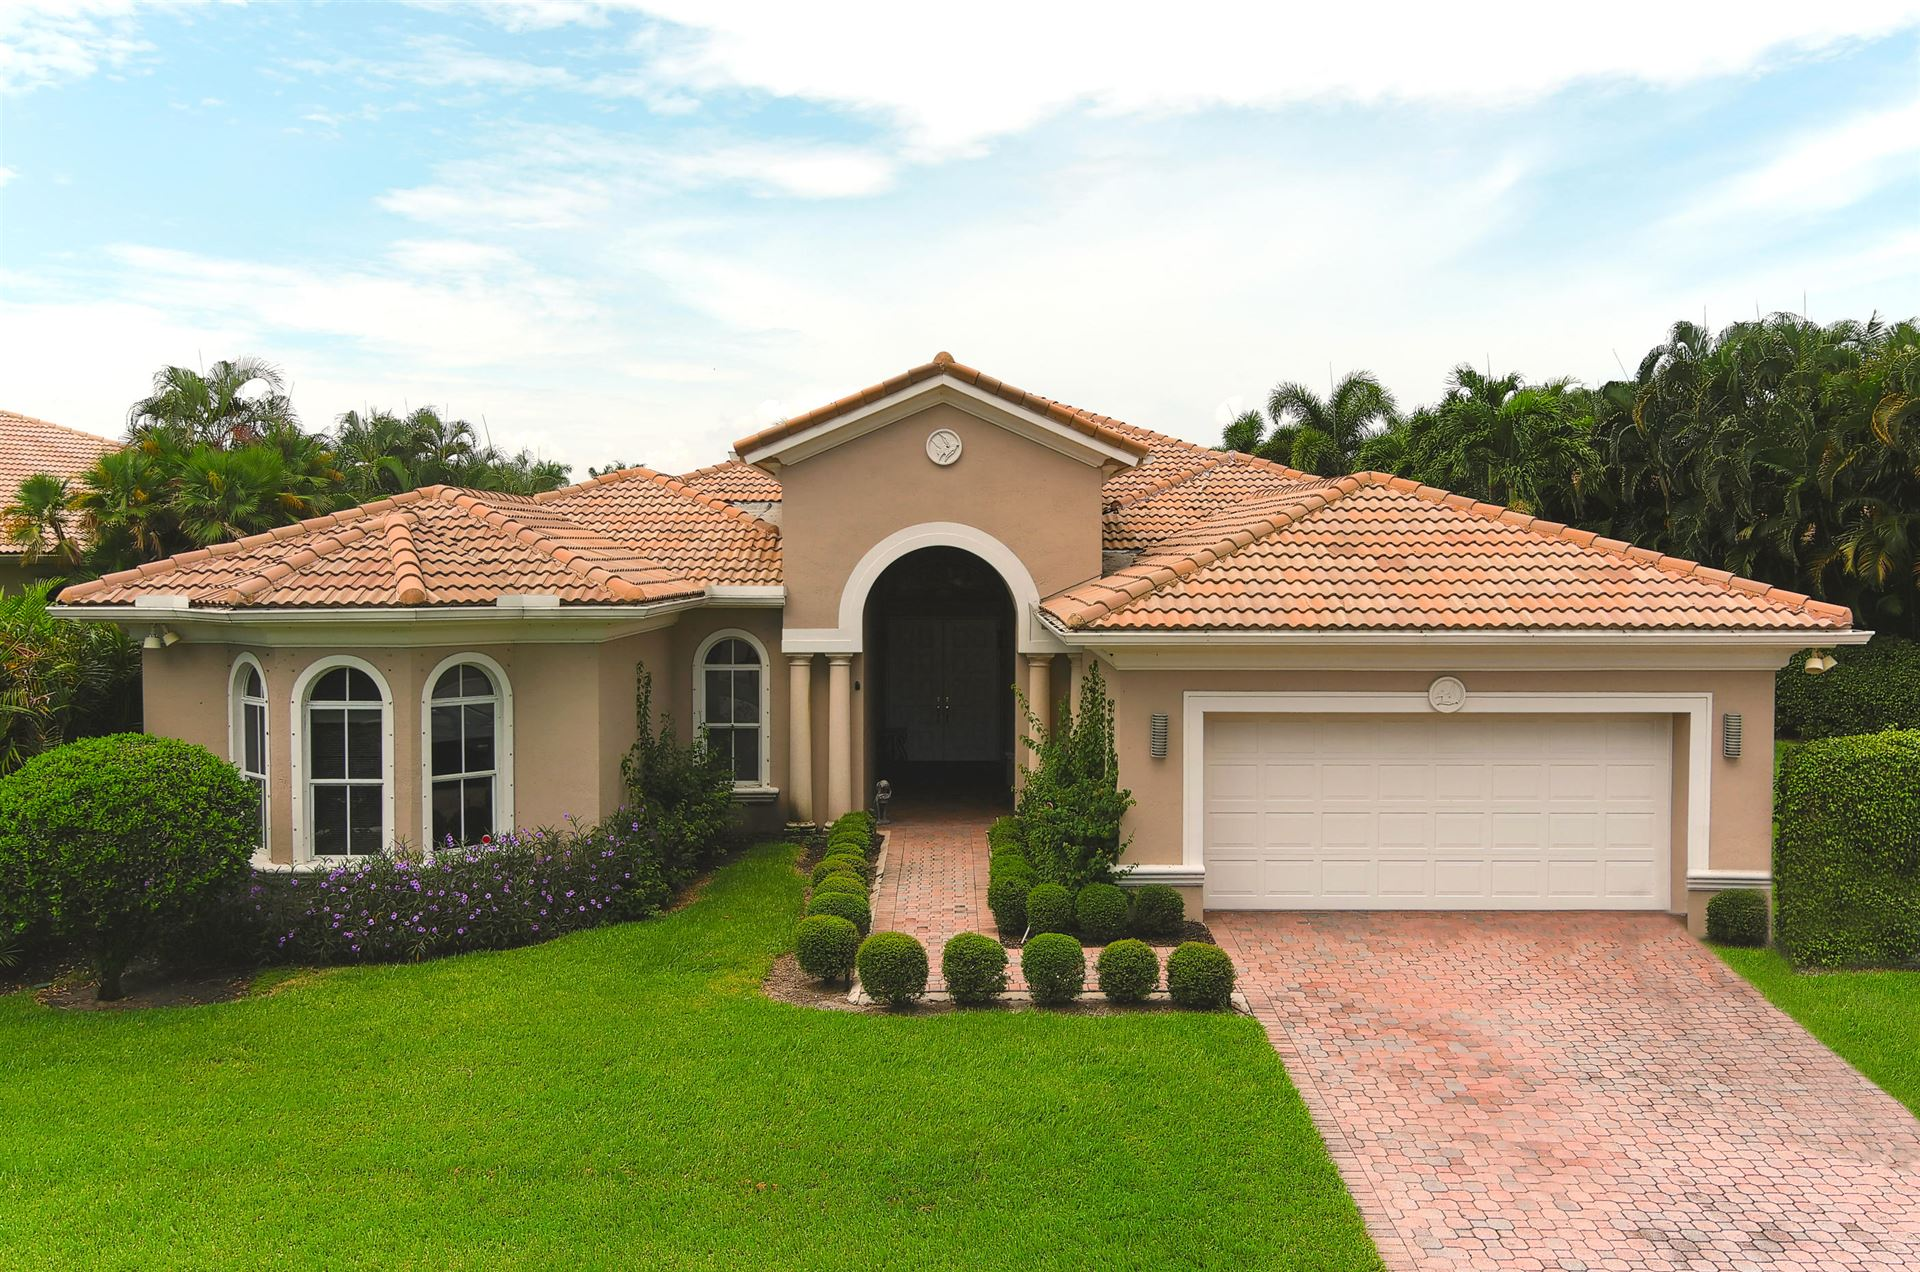 16505 Braeburn Ridge Trail, Delray Beach, FL 33446 - #: RX-10650029